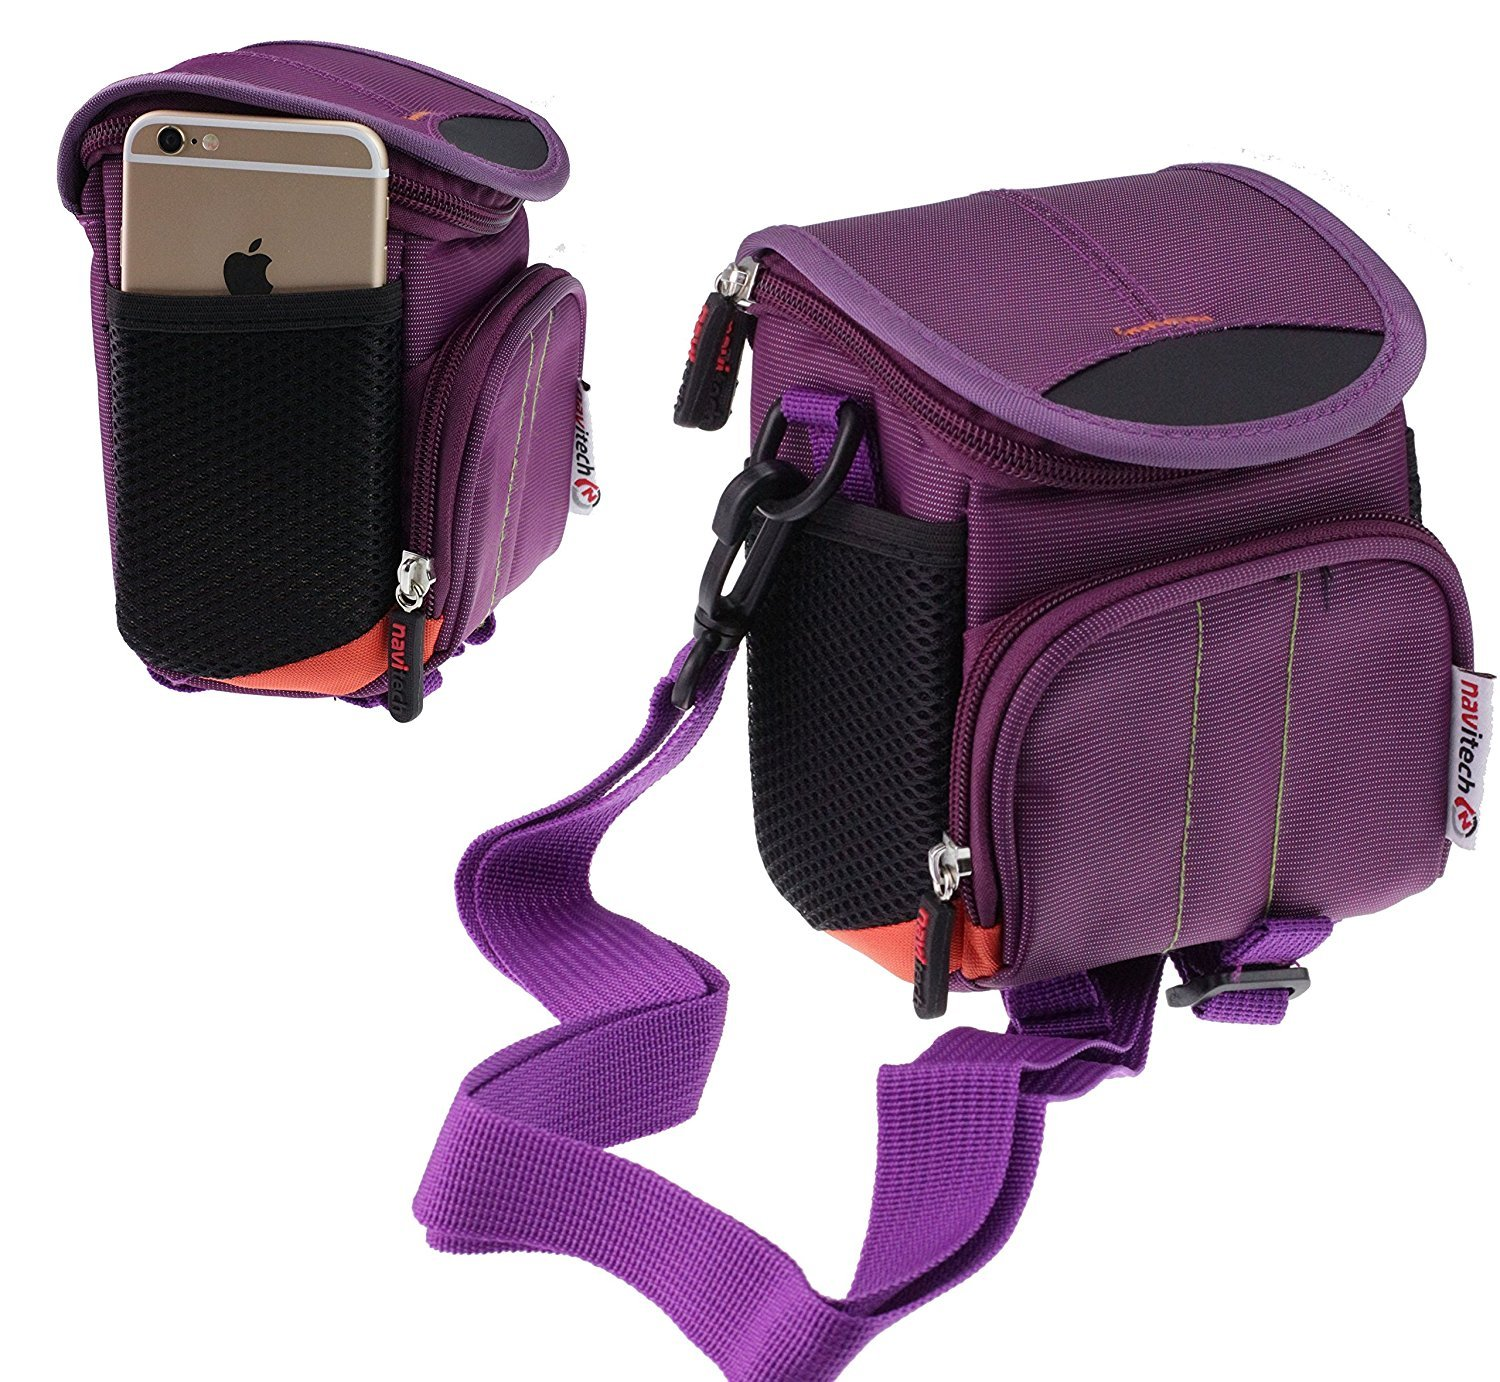 Navitech Purple Protective Portable Handheld Binocular Case and Travel Bag Compatible with The Leica Ultravid 10 x 25 BR (with Belt and Shoulder Strap) by Navitech